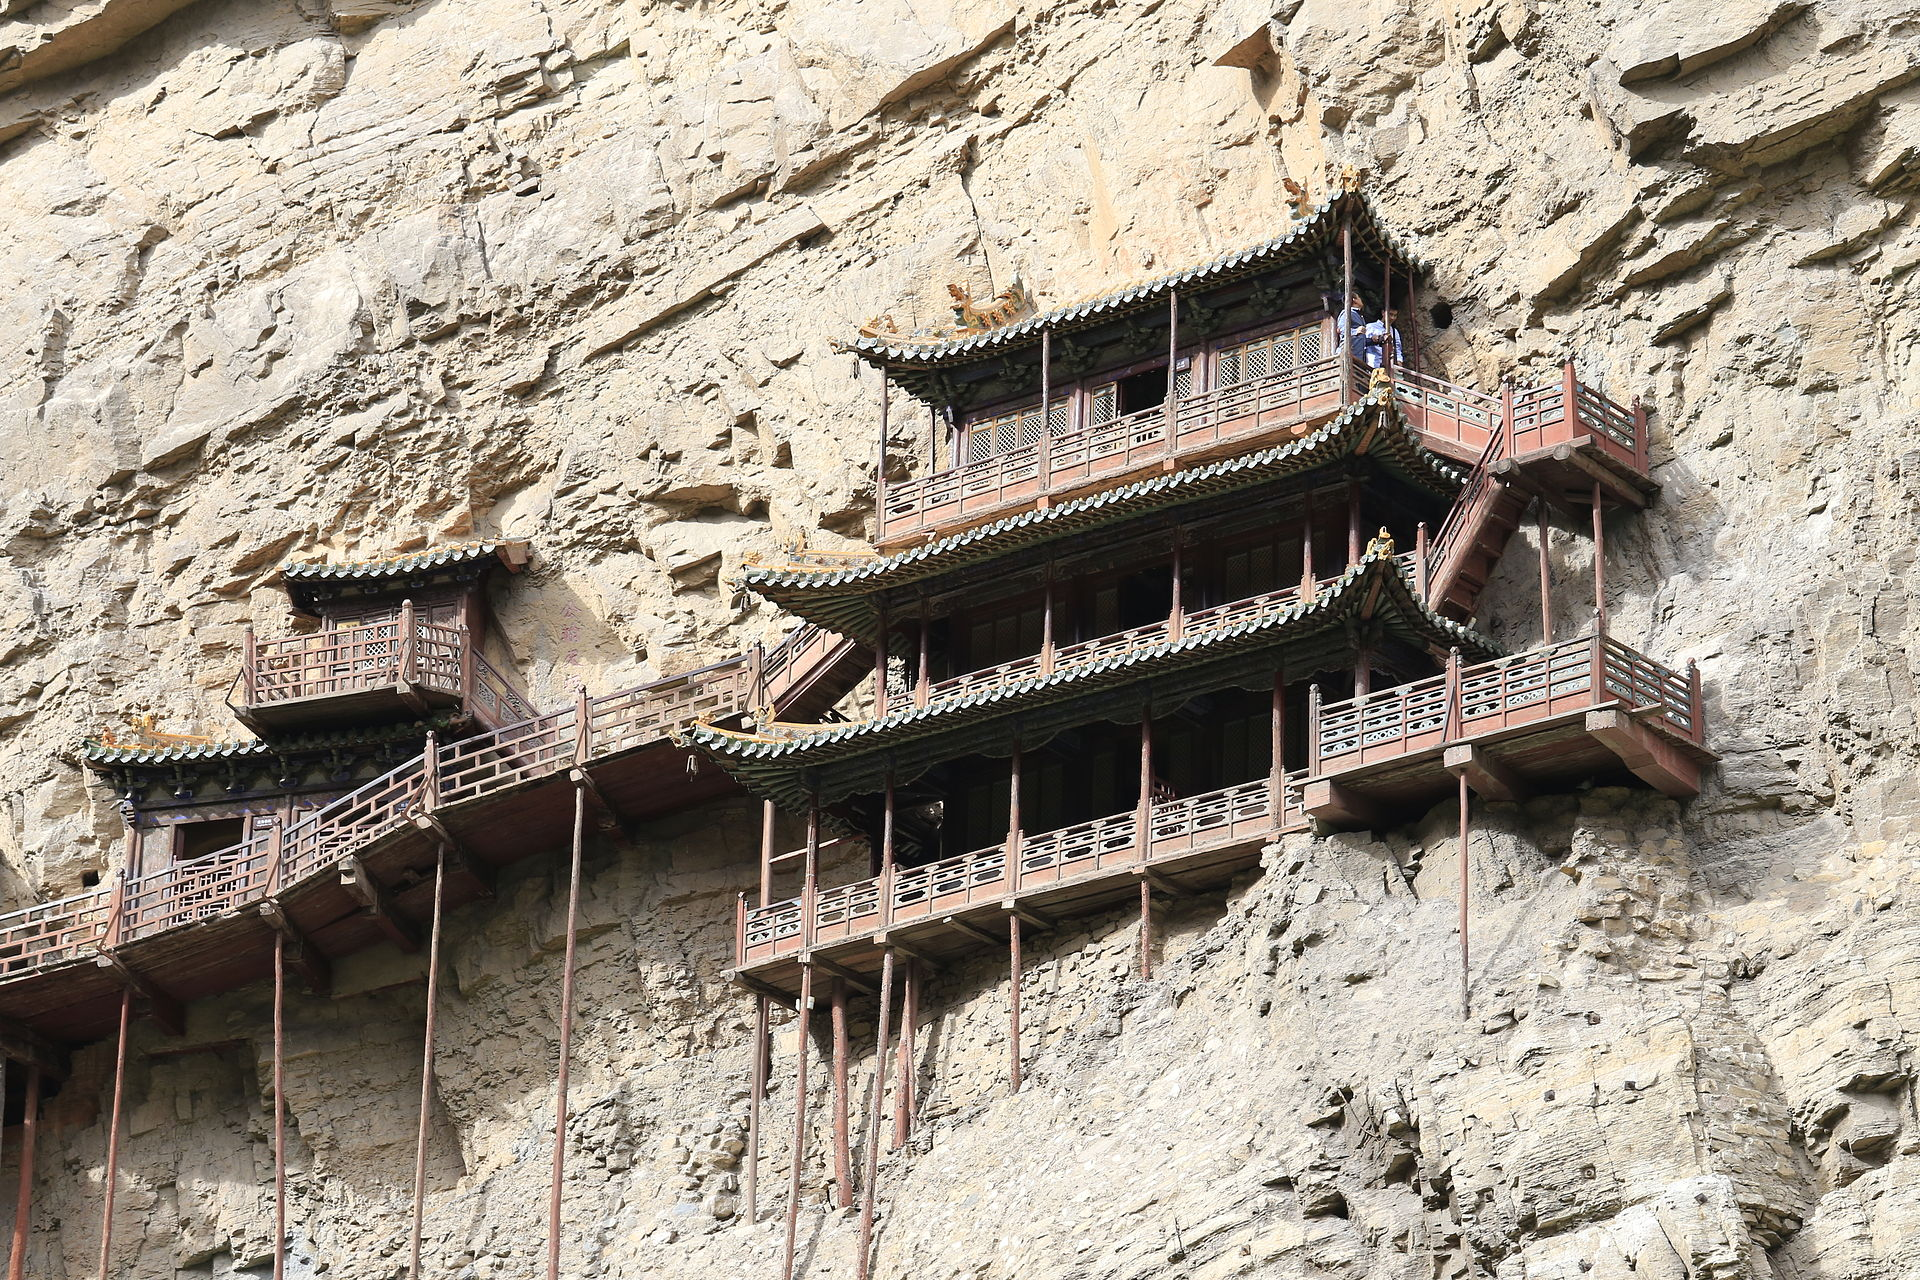 Clinging precariously to Mount Hengshan's cliff-face, in Datong in Shanxi Province, at 75 meters above the ground. (Image: Zhangzhugang via wikimedia CC BY-SA 3.0)